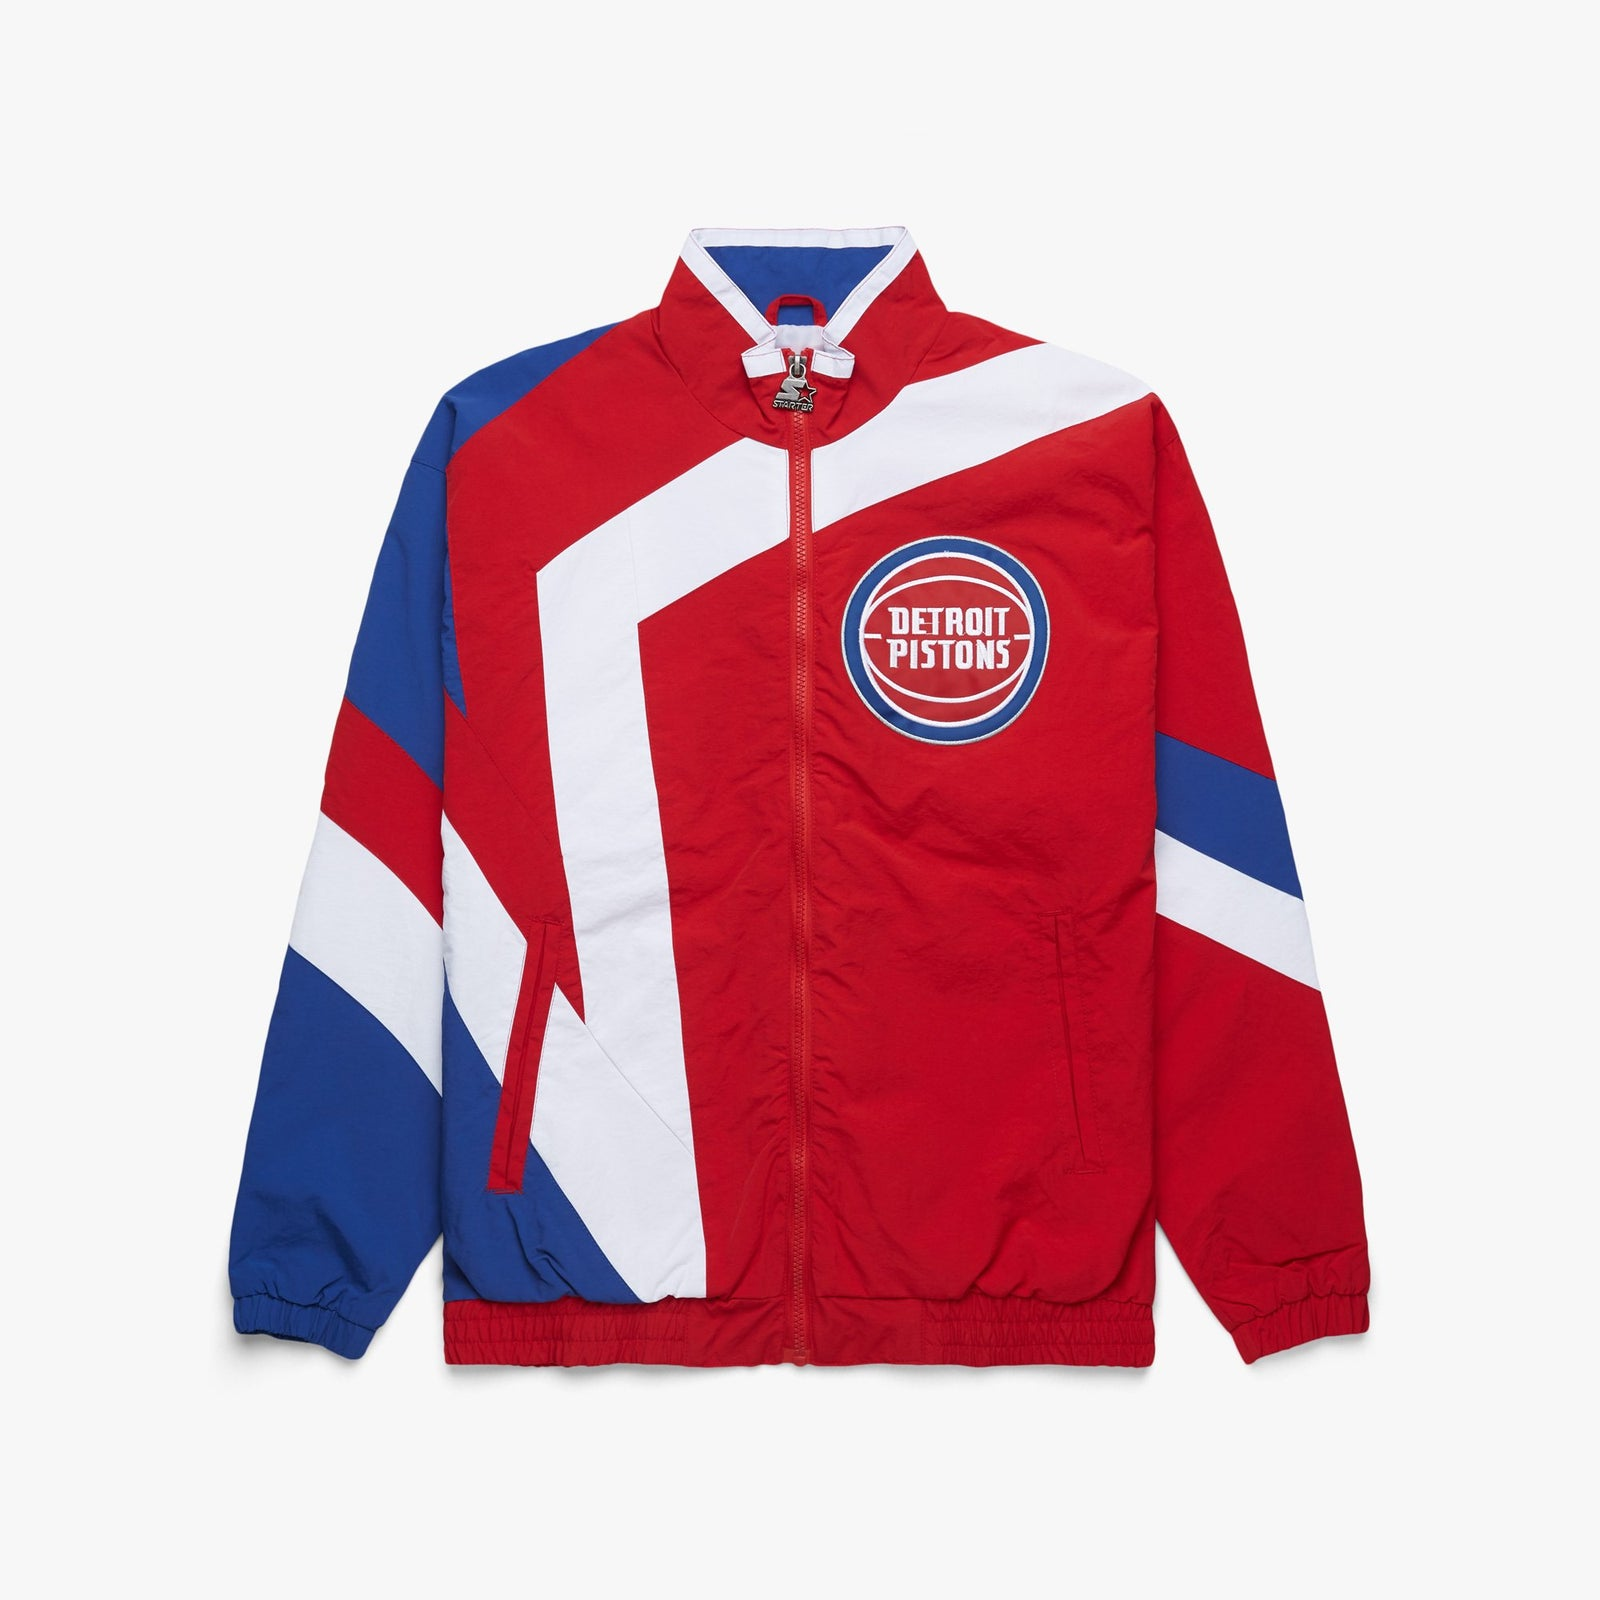 HOMAGE x Starter NBA Pistons Warmup Jacket